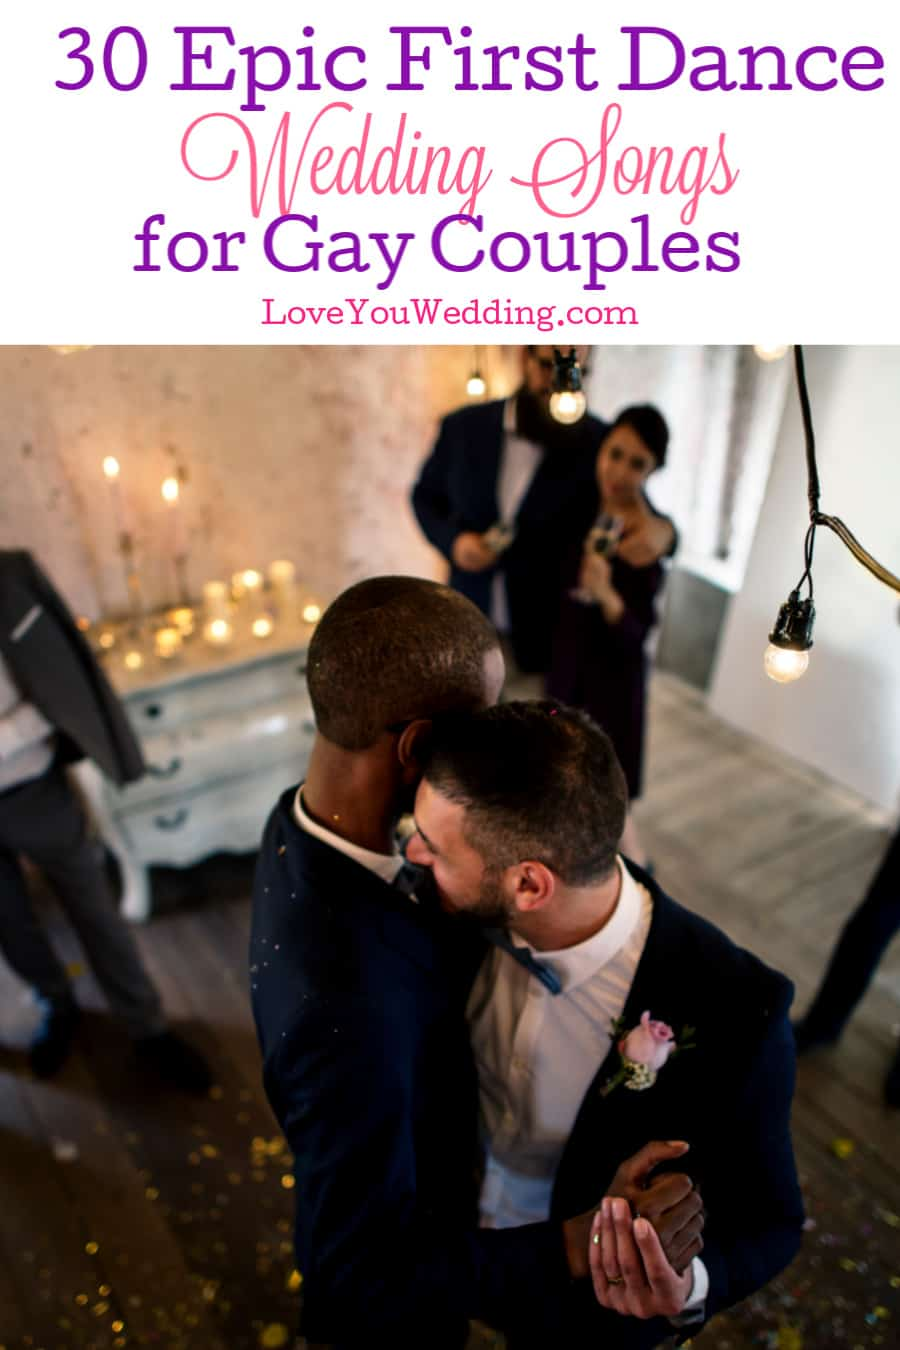 Looking for some amazing first dance wedding songs for gay couples? These gender-neutral ideas are absolutely perfect for your big day!